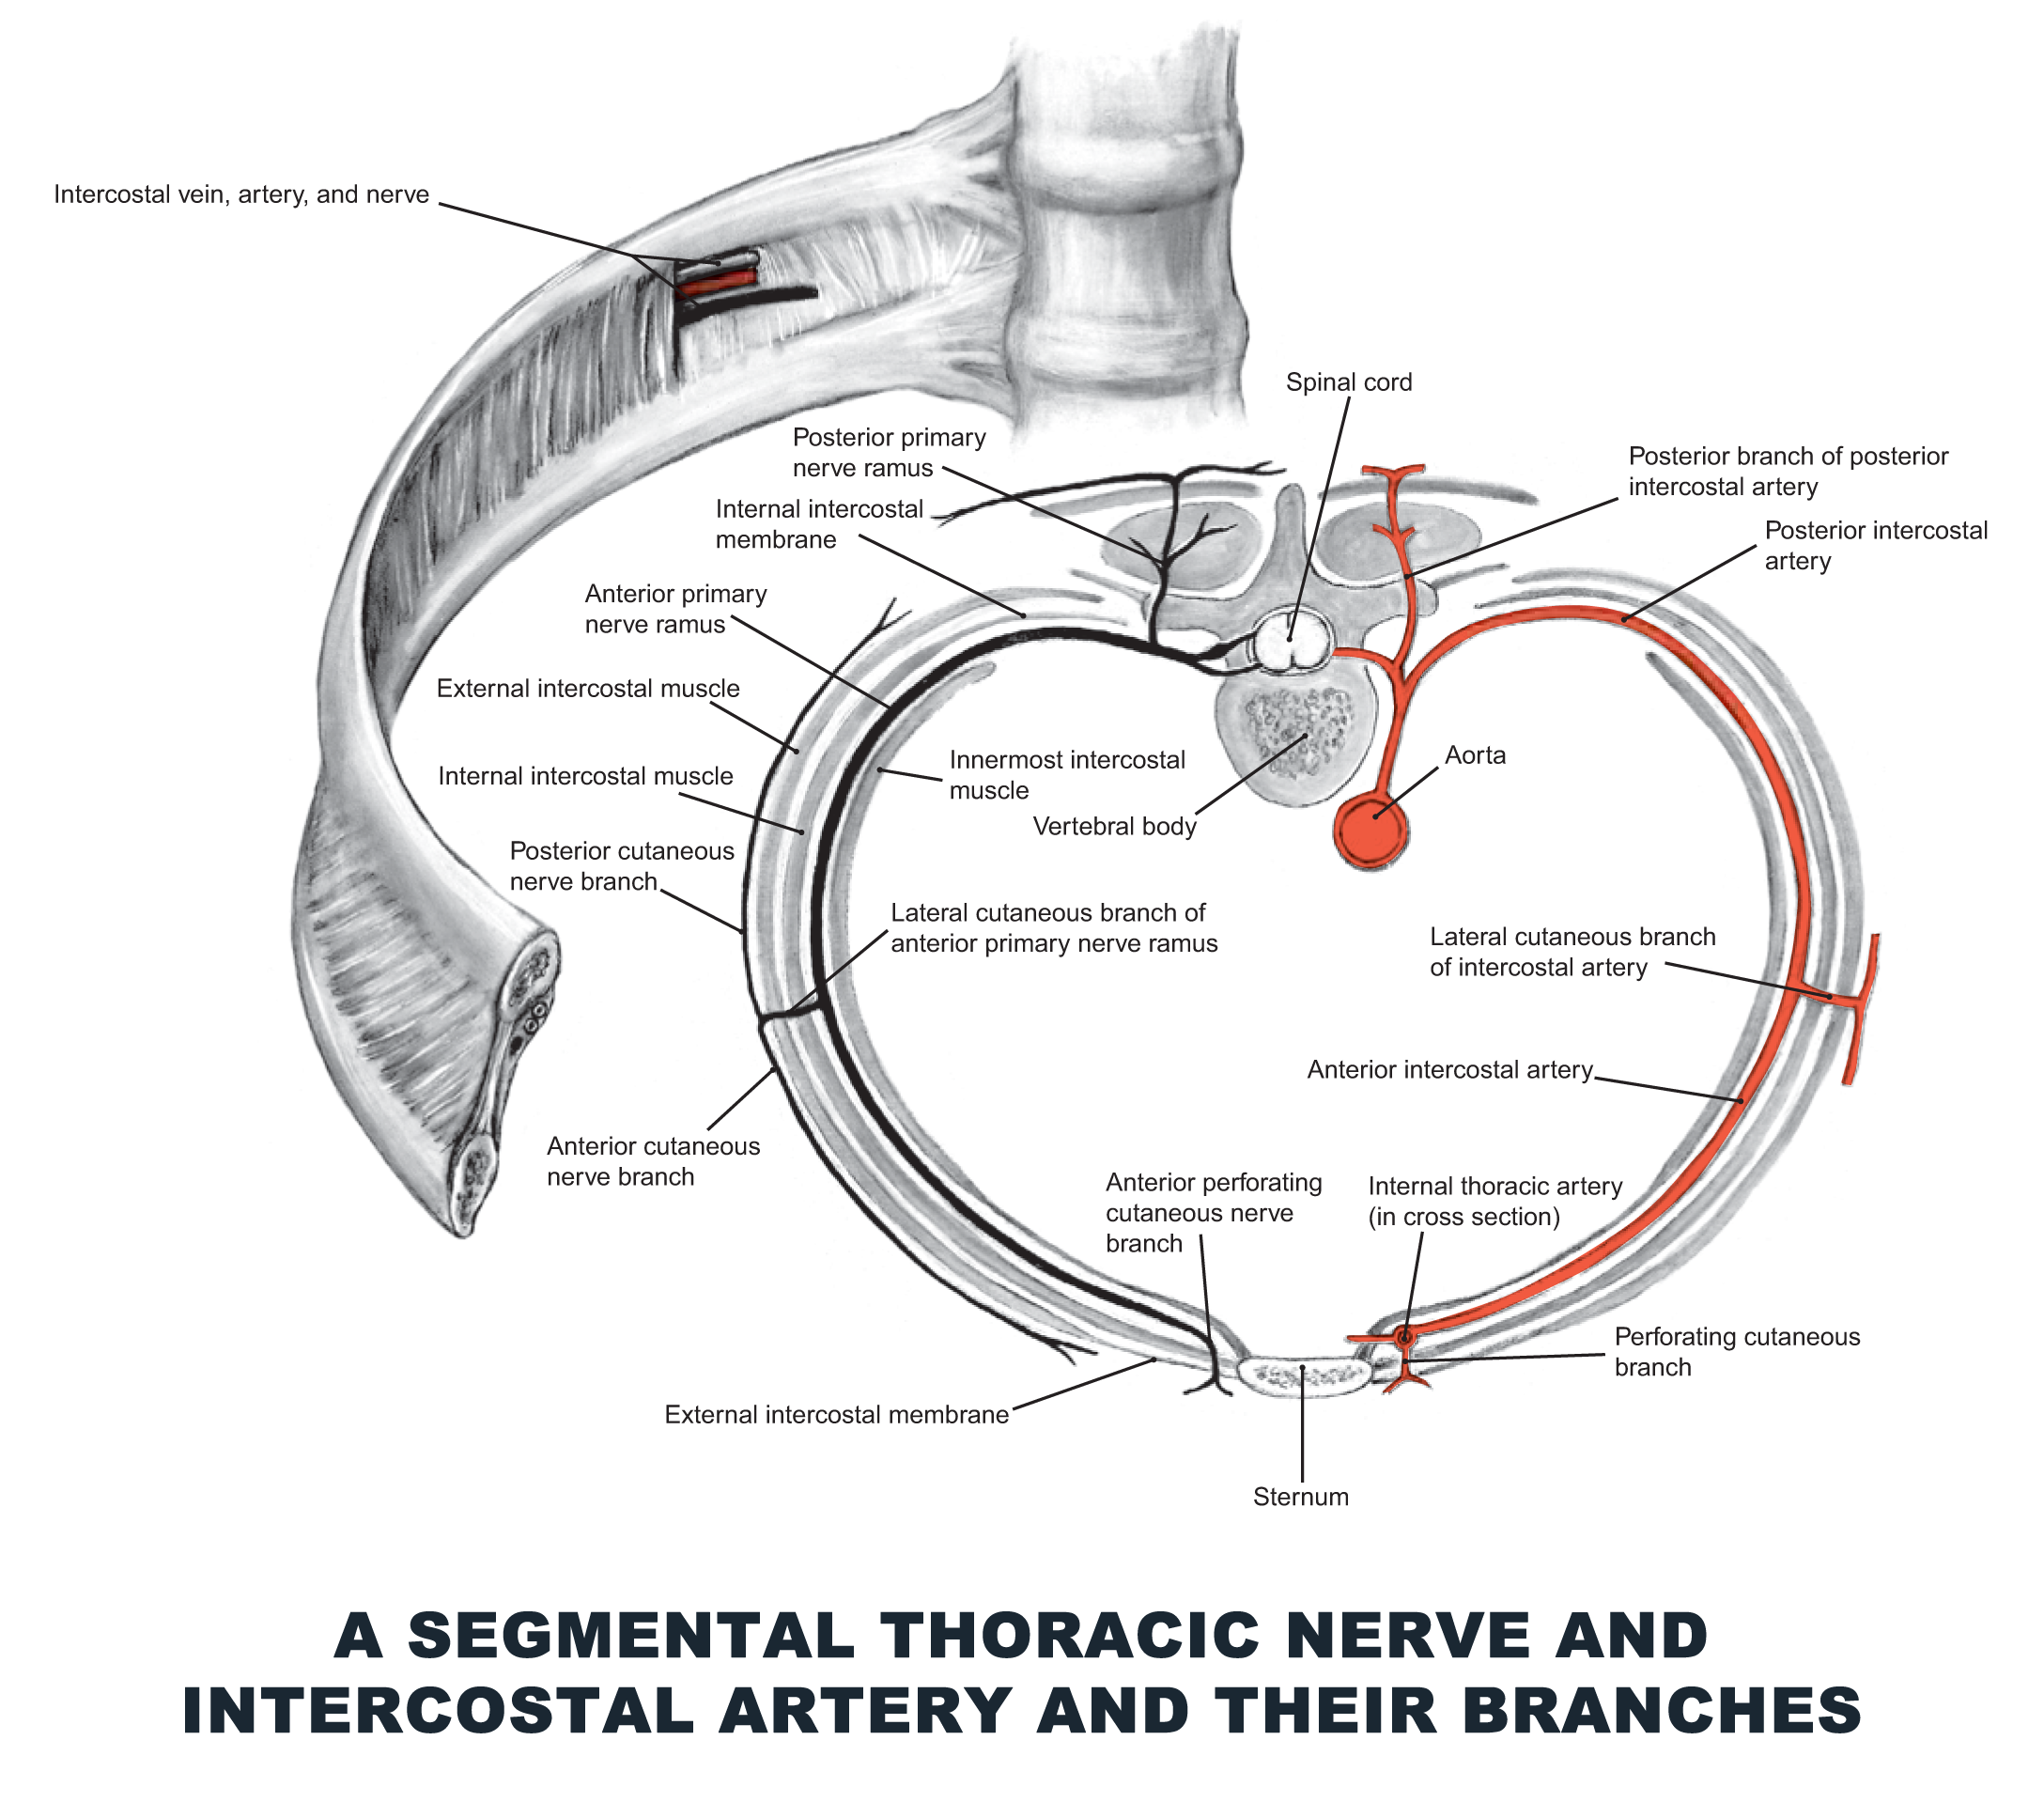 A Segmental Thoracic Nerve and Intercostal Artery and Their Branches ...